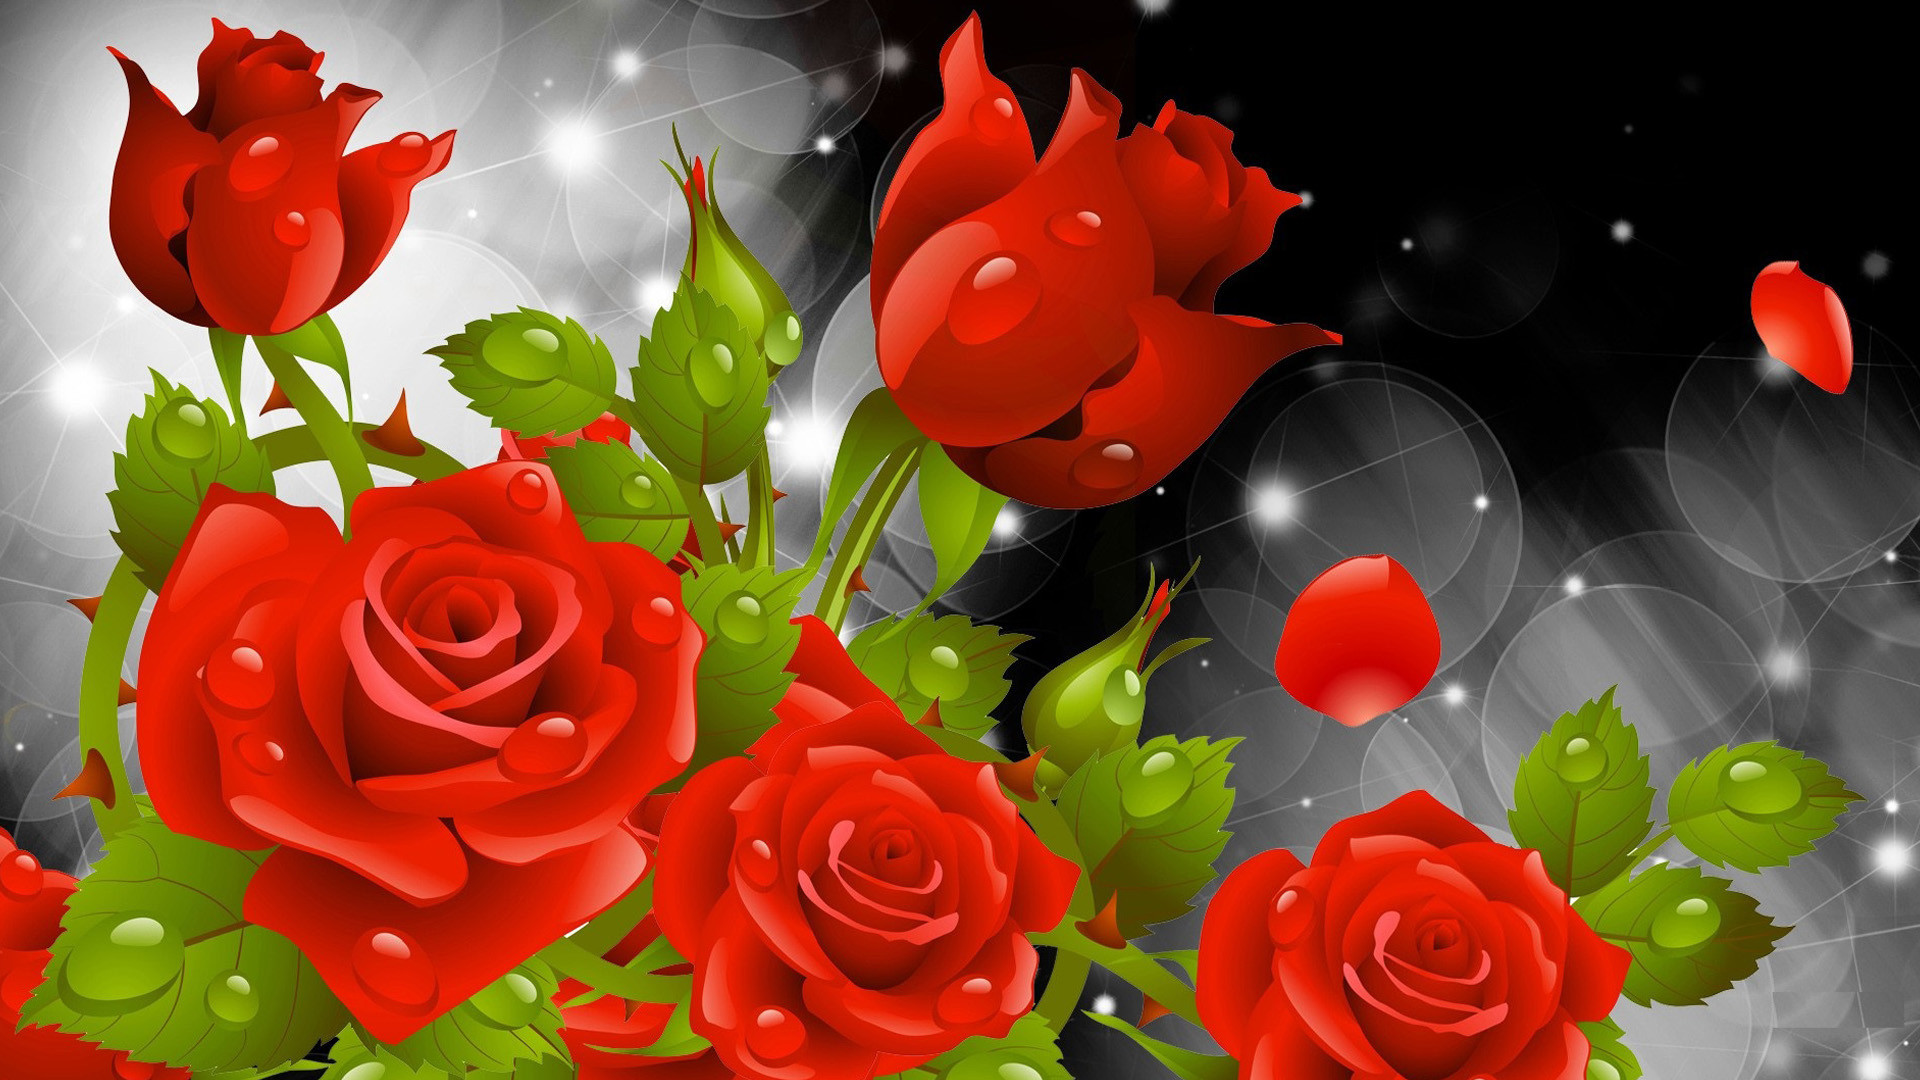 Red Rose Wallpapers Red Flowers Hd Pictures One Hd - Flower Rose Wallpaper Hd Nature - HD Wallpaper